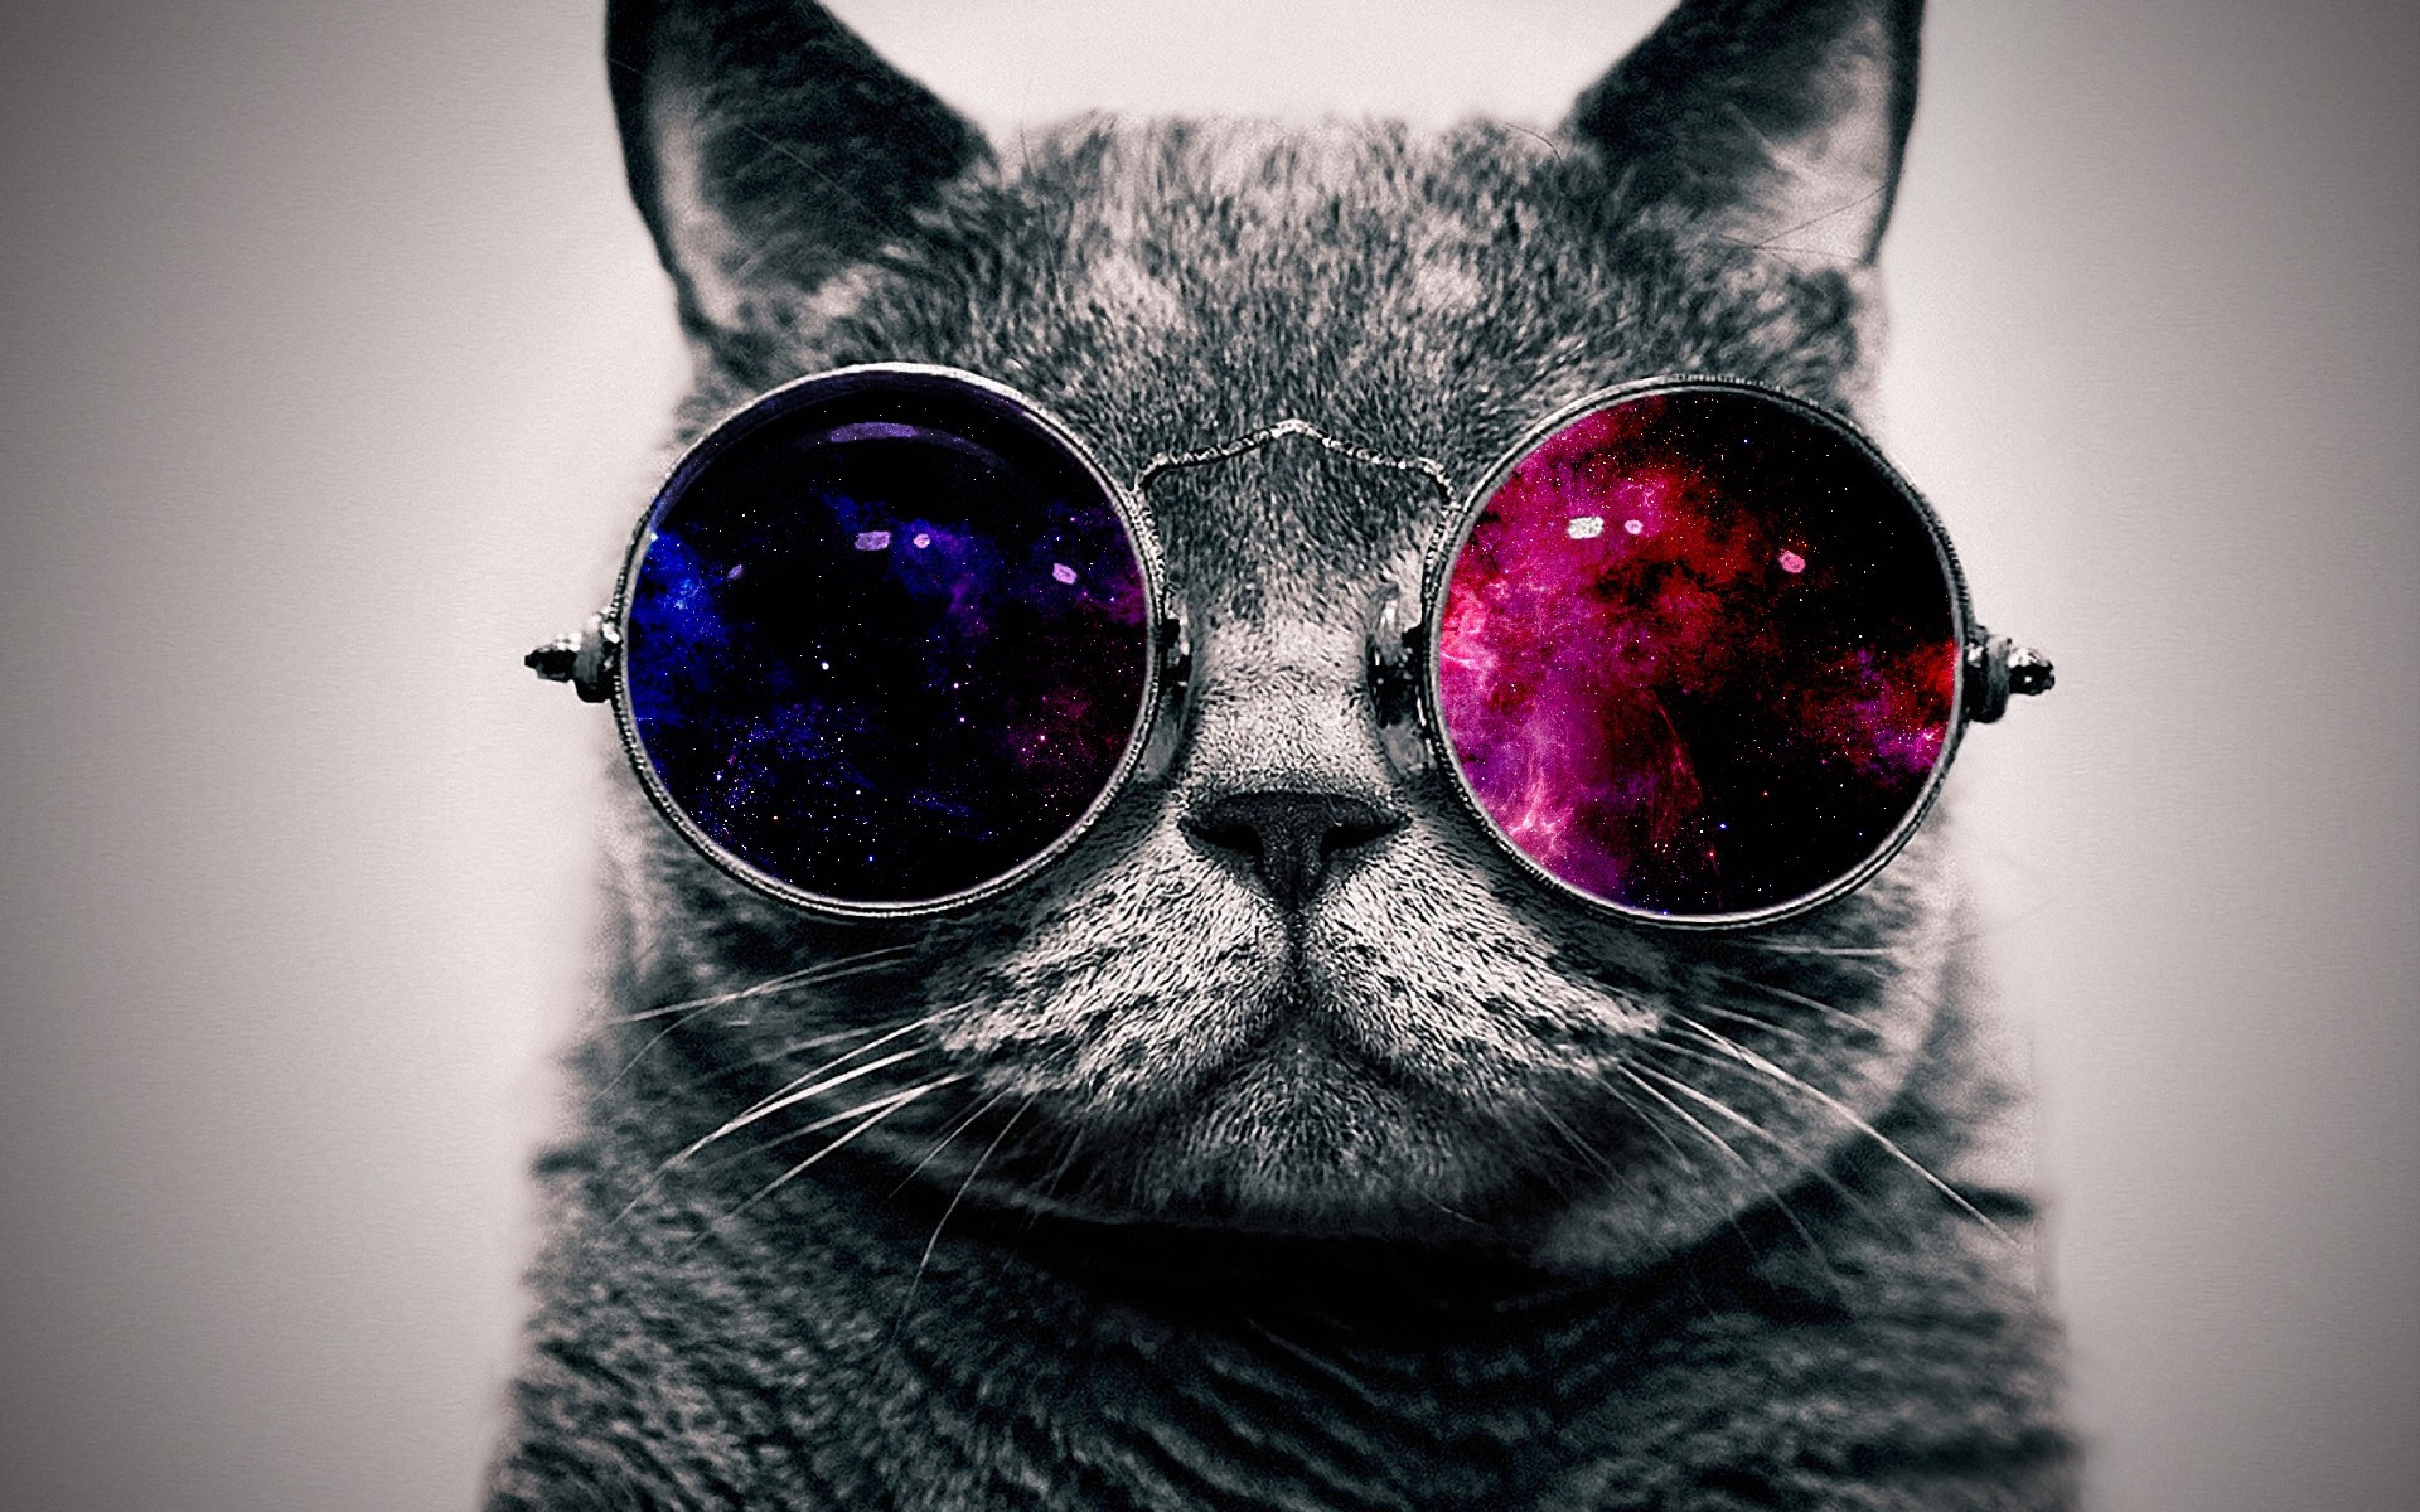 Download Wallpaper 3840x2400 Cat Face Glasses Thick Ultra HD 4K Background